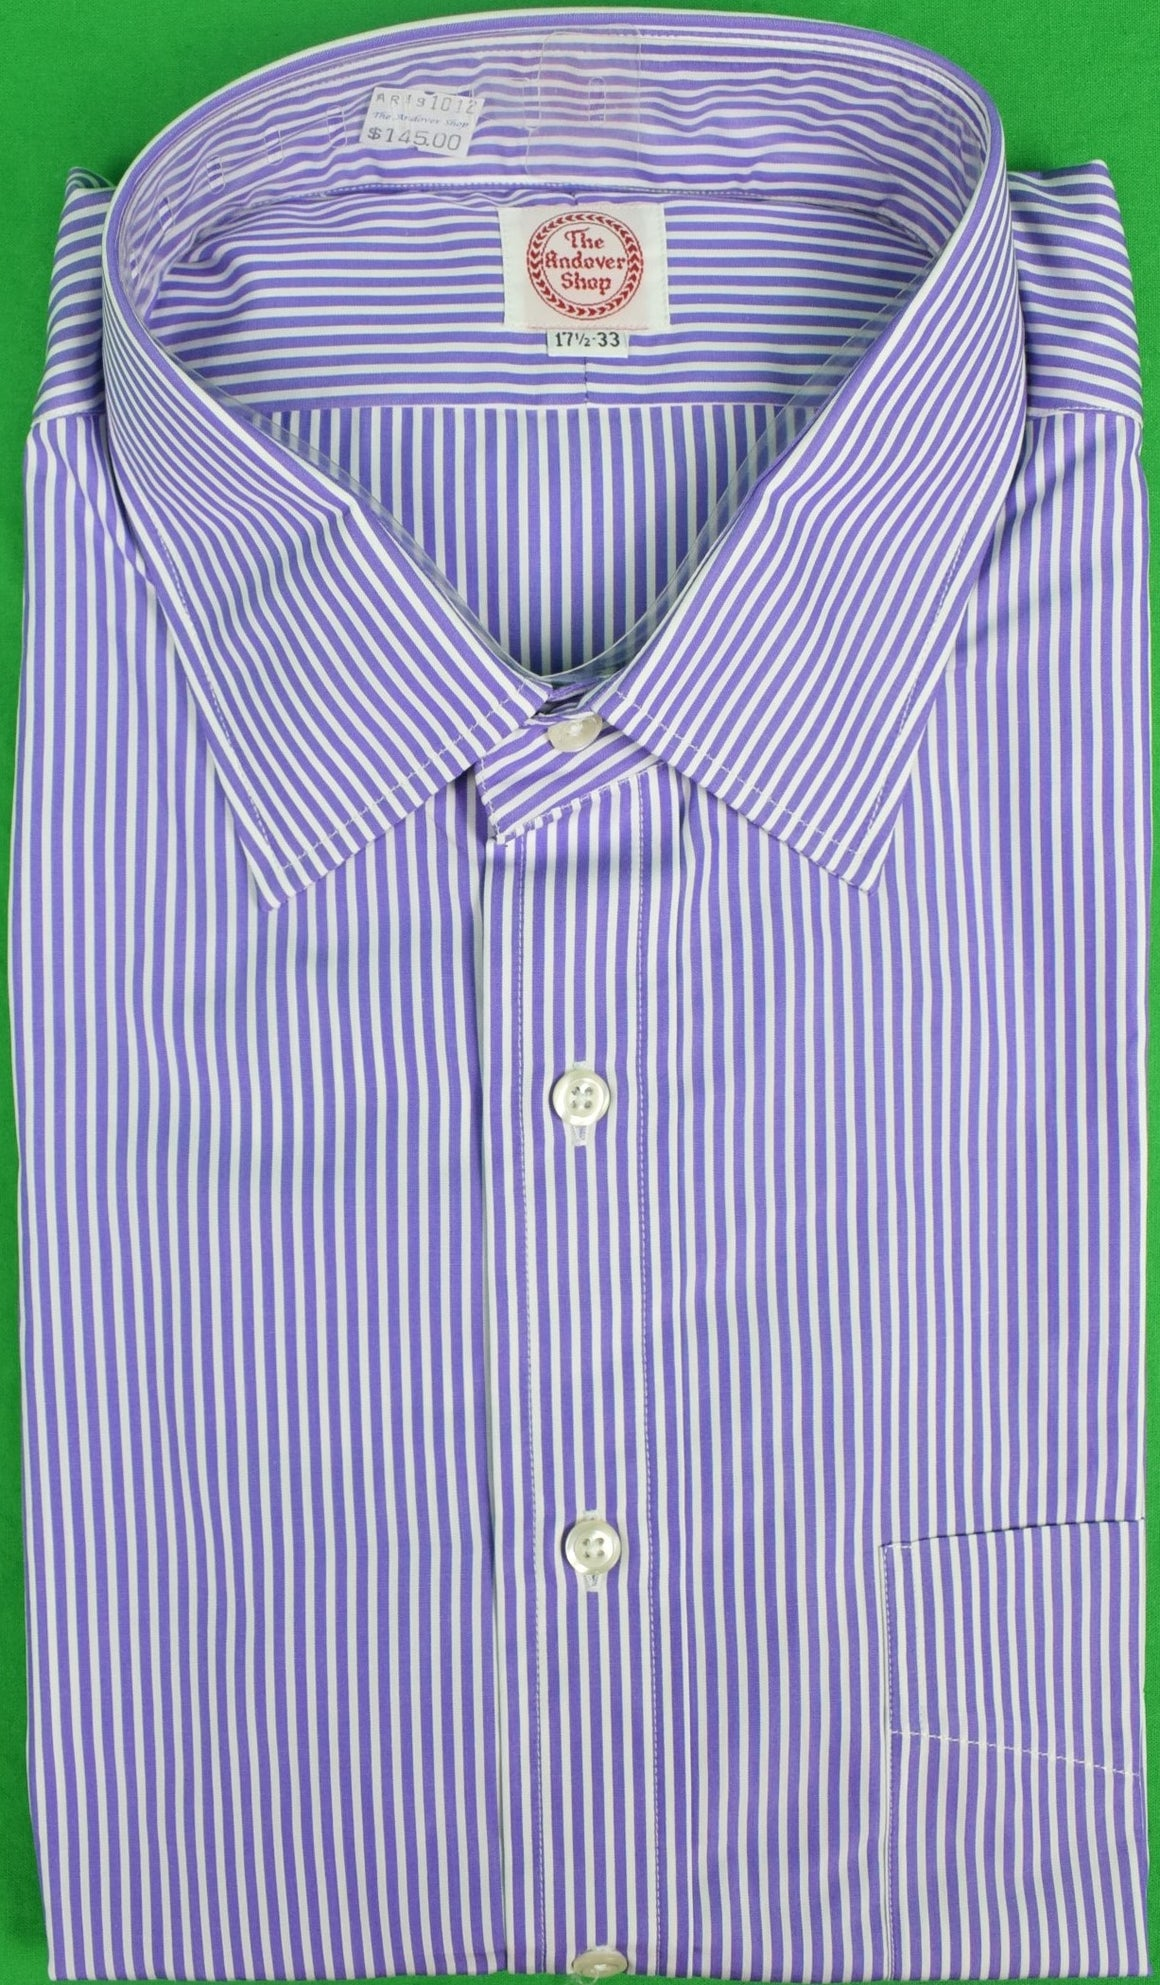 The Andover Shop Purple/ White Stripe Straight Collar 17.5-33 (New/ Old Deadstock!)